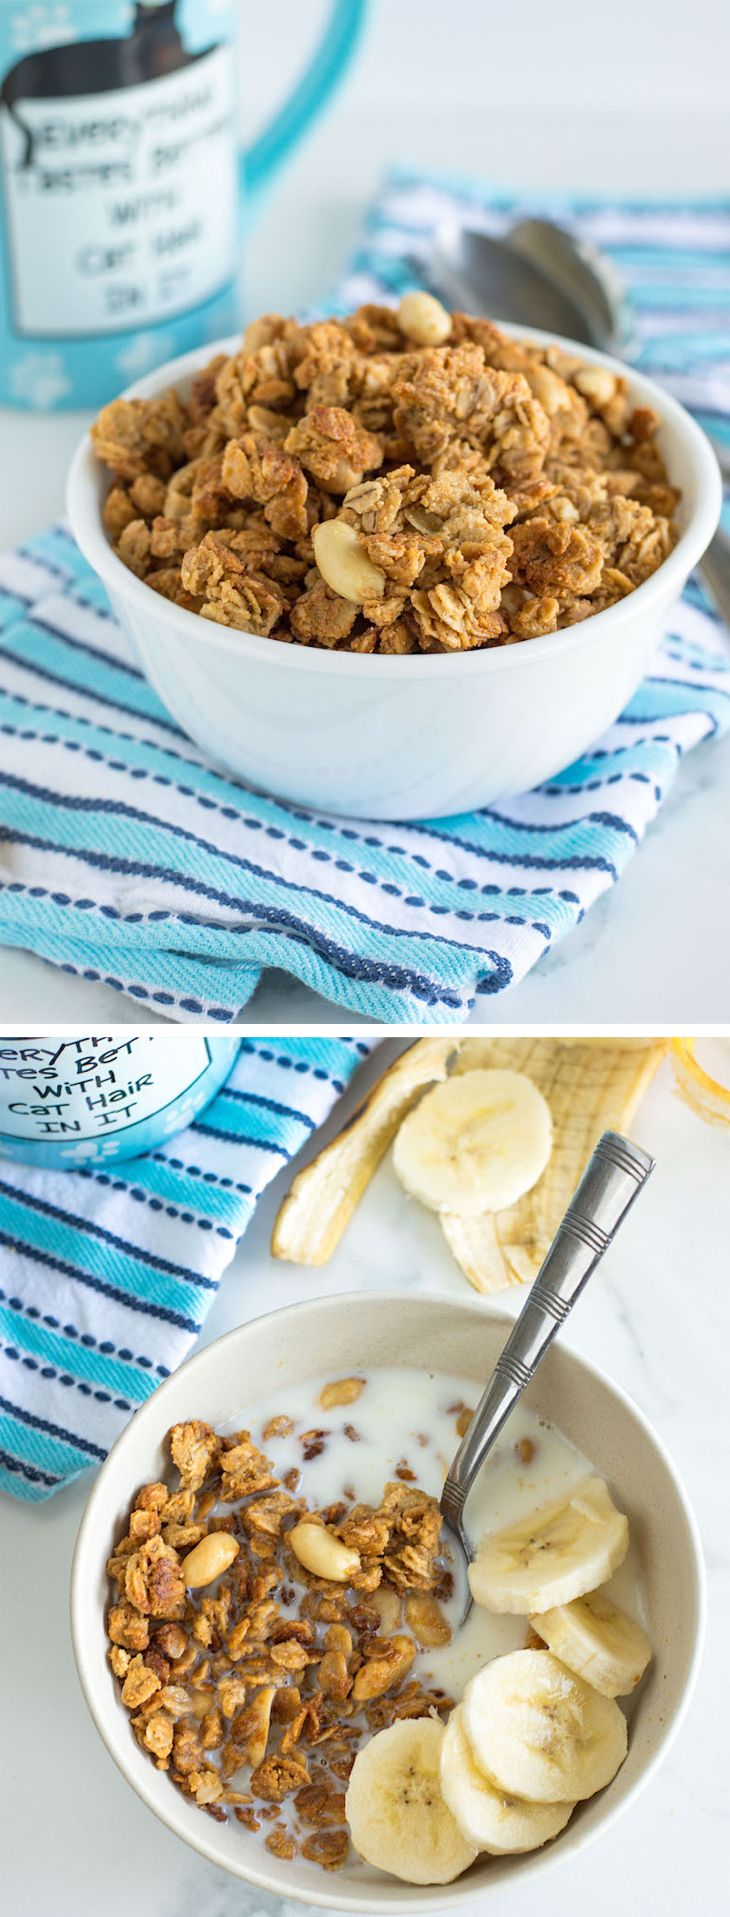 Crunchy Peanut Butter Granola with Honey and Oats | Recipe ...